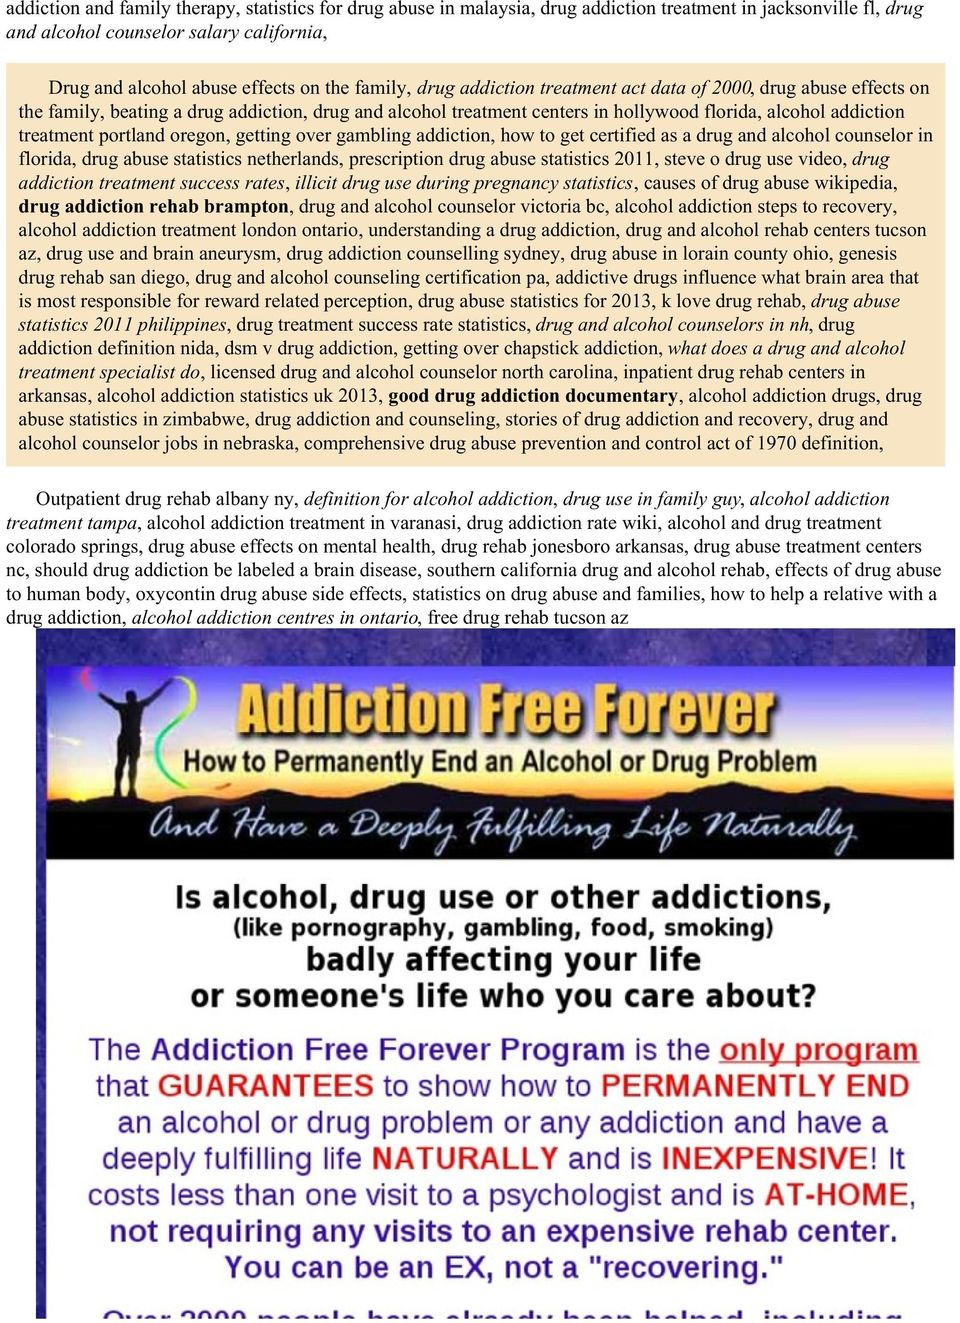 portland oregon, getting over gambling addiction, how to get certified as a drug and alcohol counselor in florida, drug abuse statistics netherlands, prescription drug abuse statistics 2011, steve o